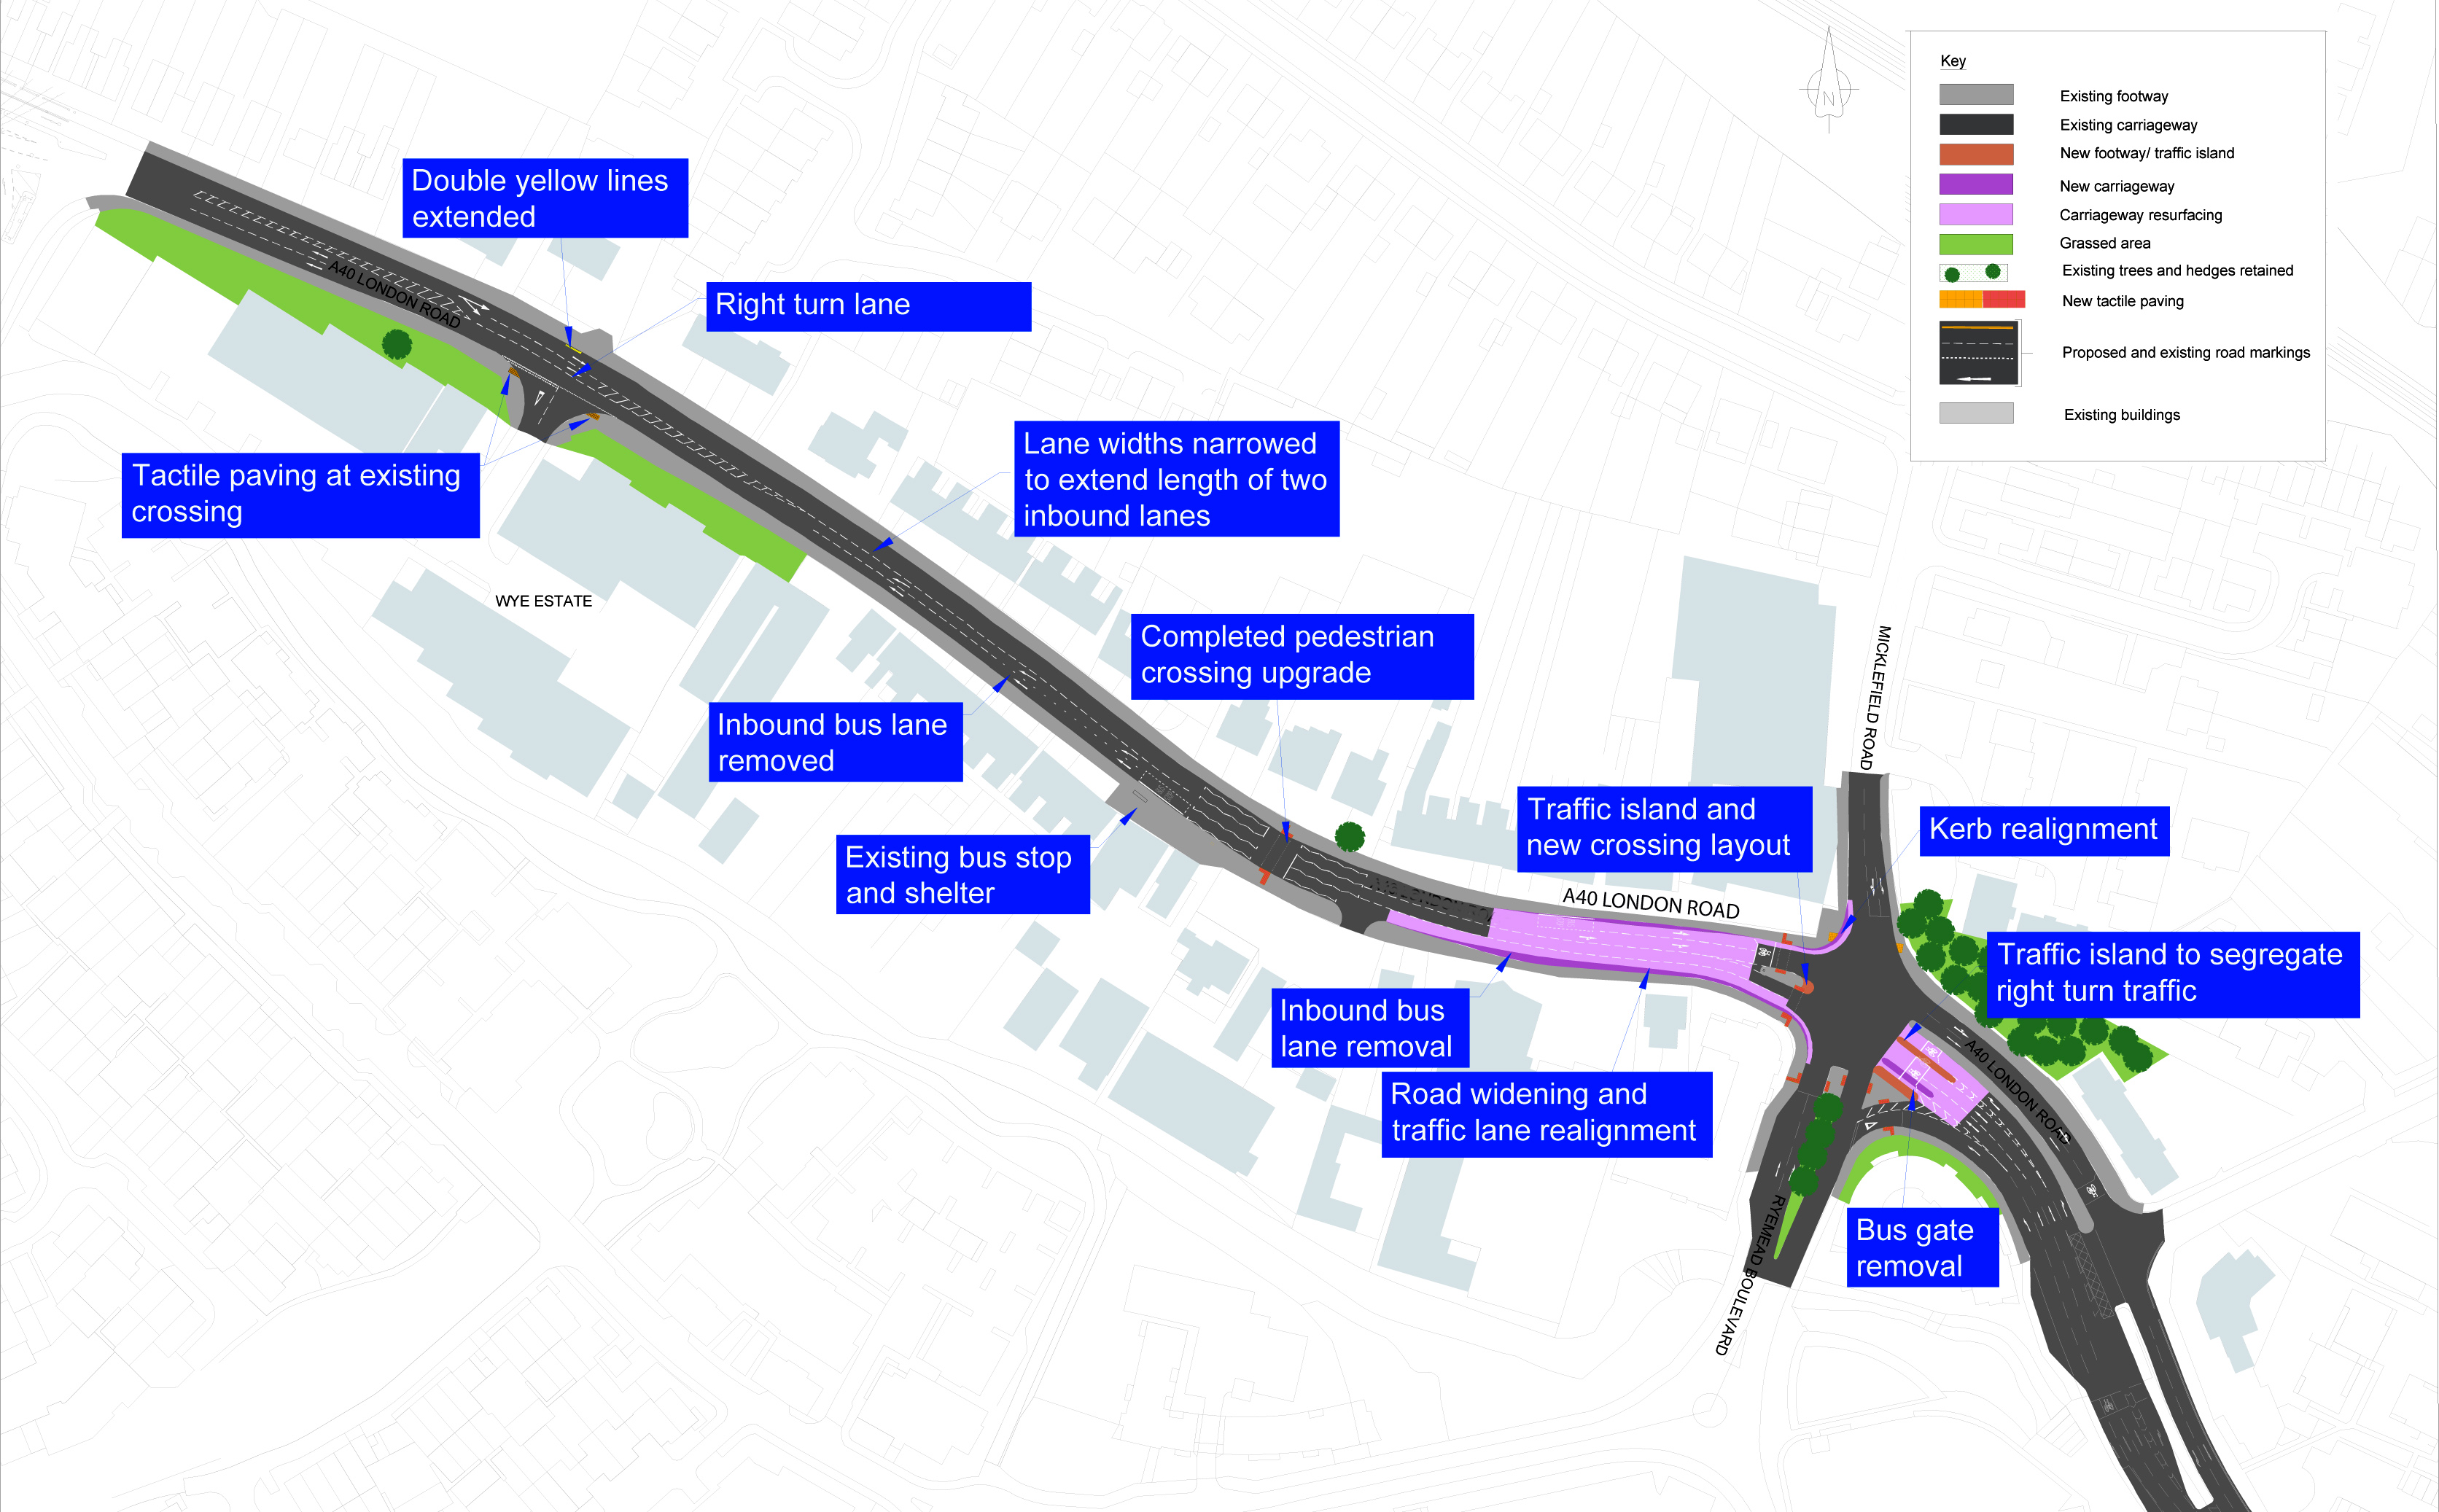 New phase in London Road improvement work